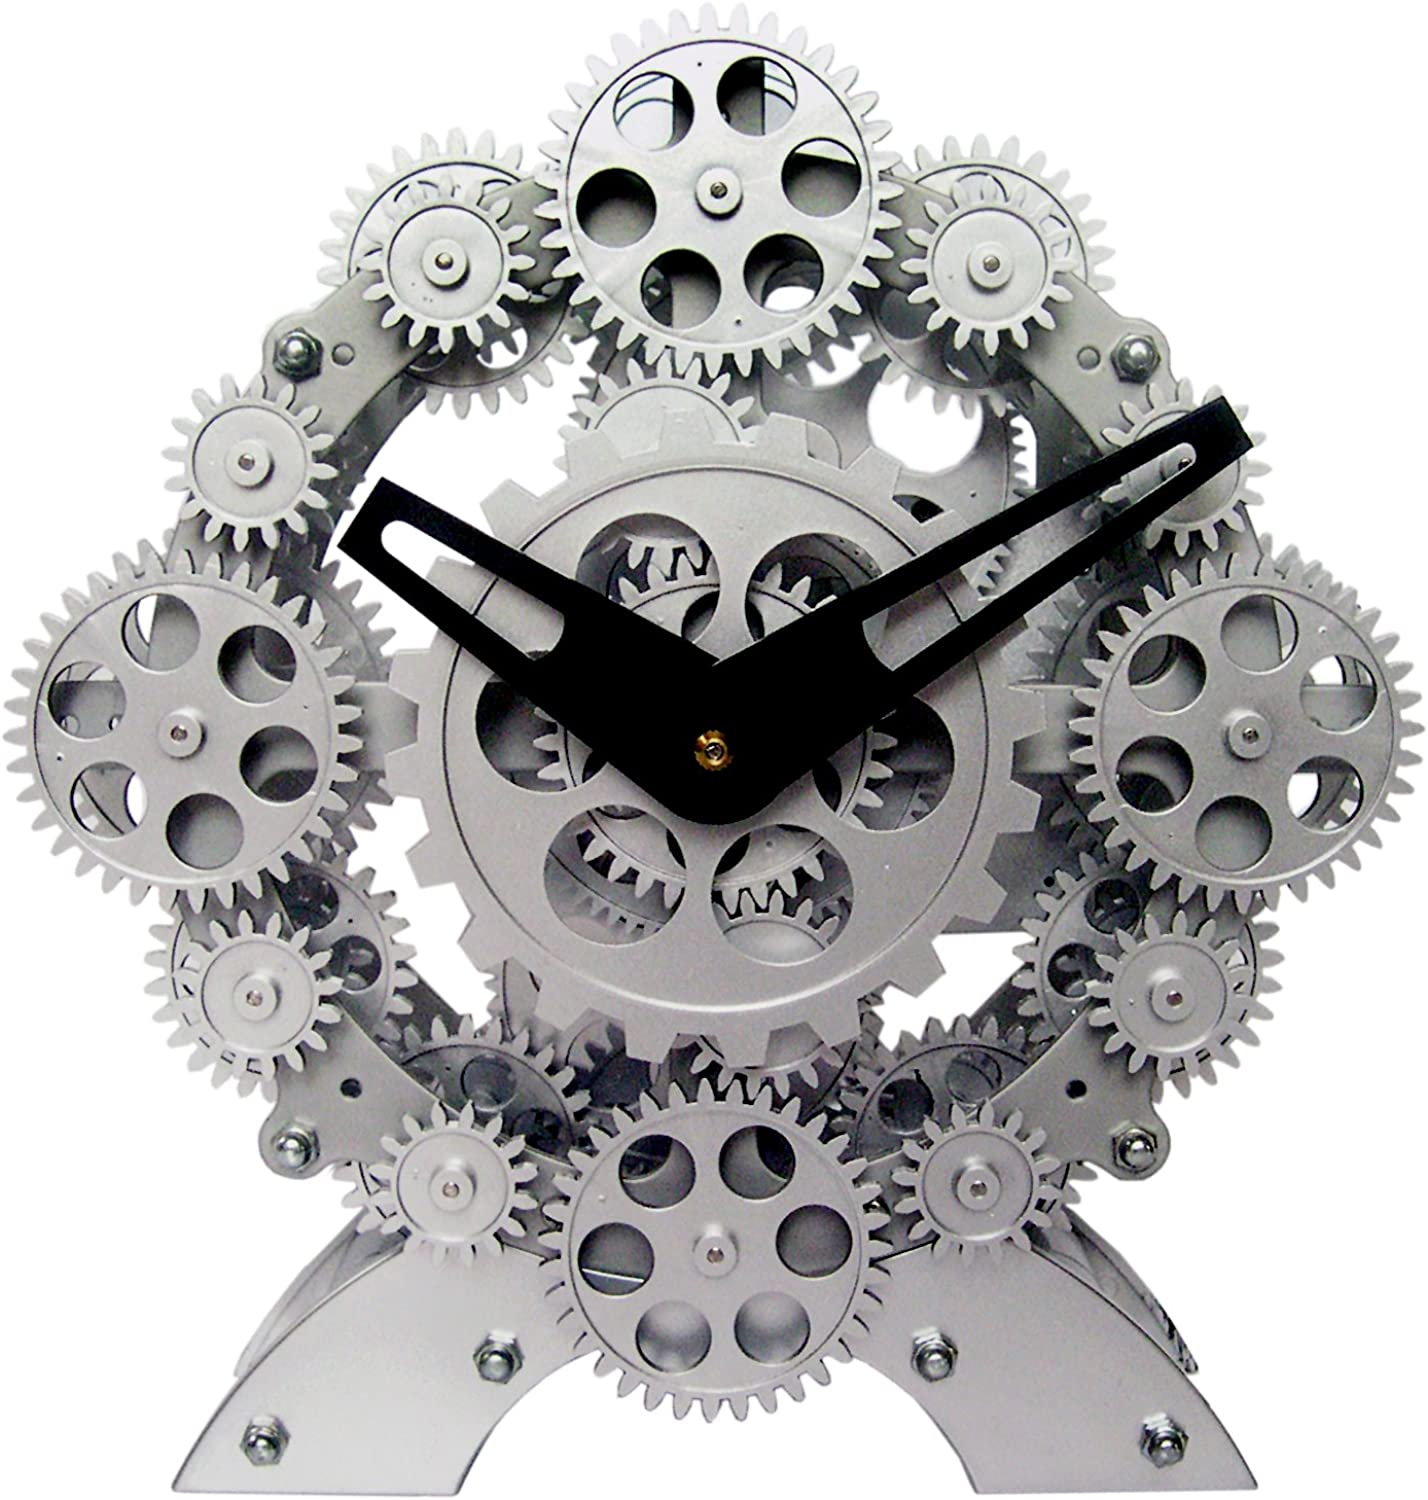 Maple's Moving Gear Table Clock, Numerous Gears